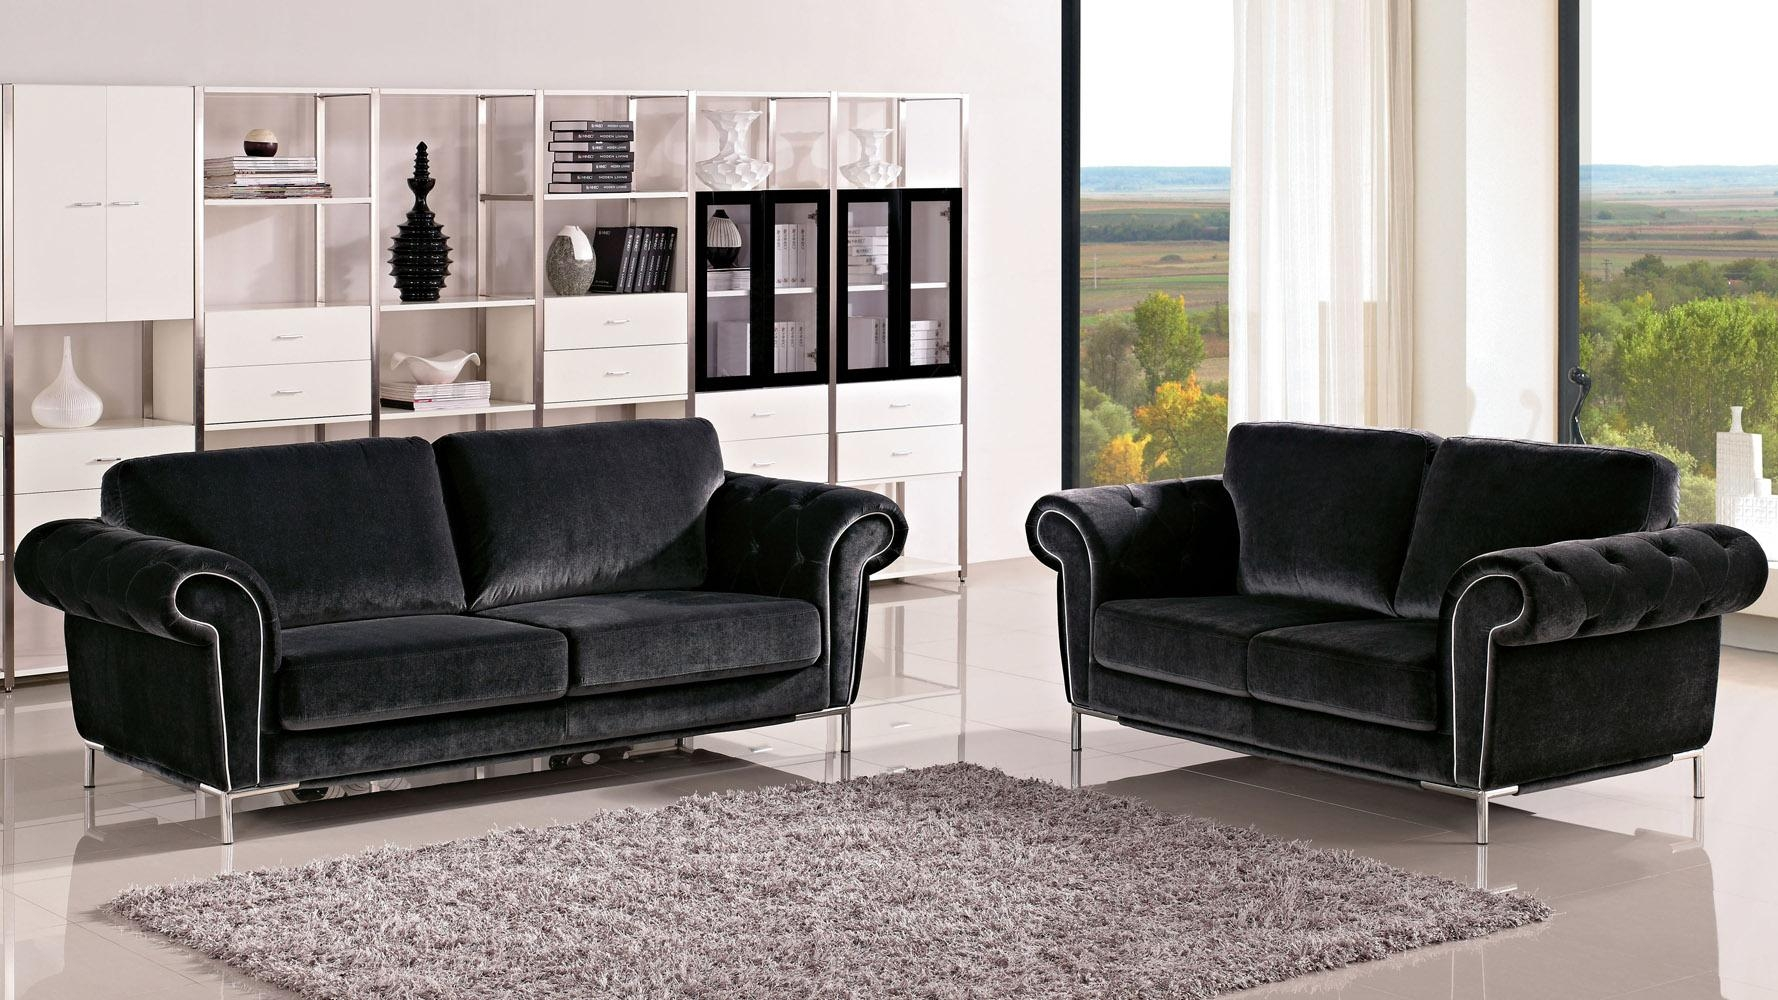 Modern Sofas & Contemporary Sofas : Modern Living Room Furniture with Contemporary Sofas And Chairs